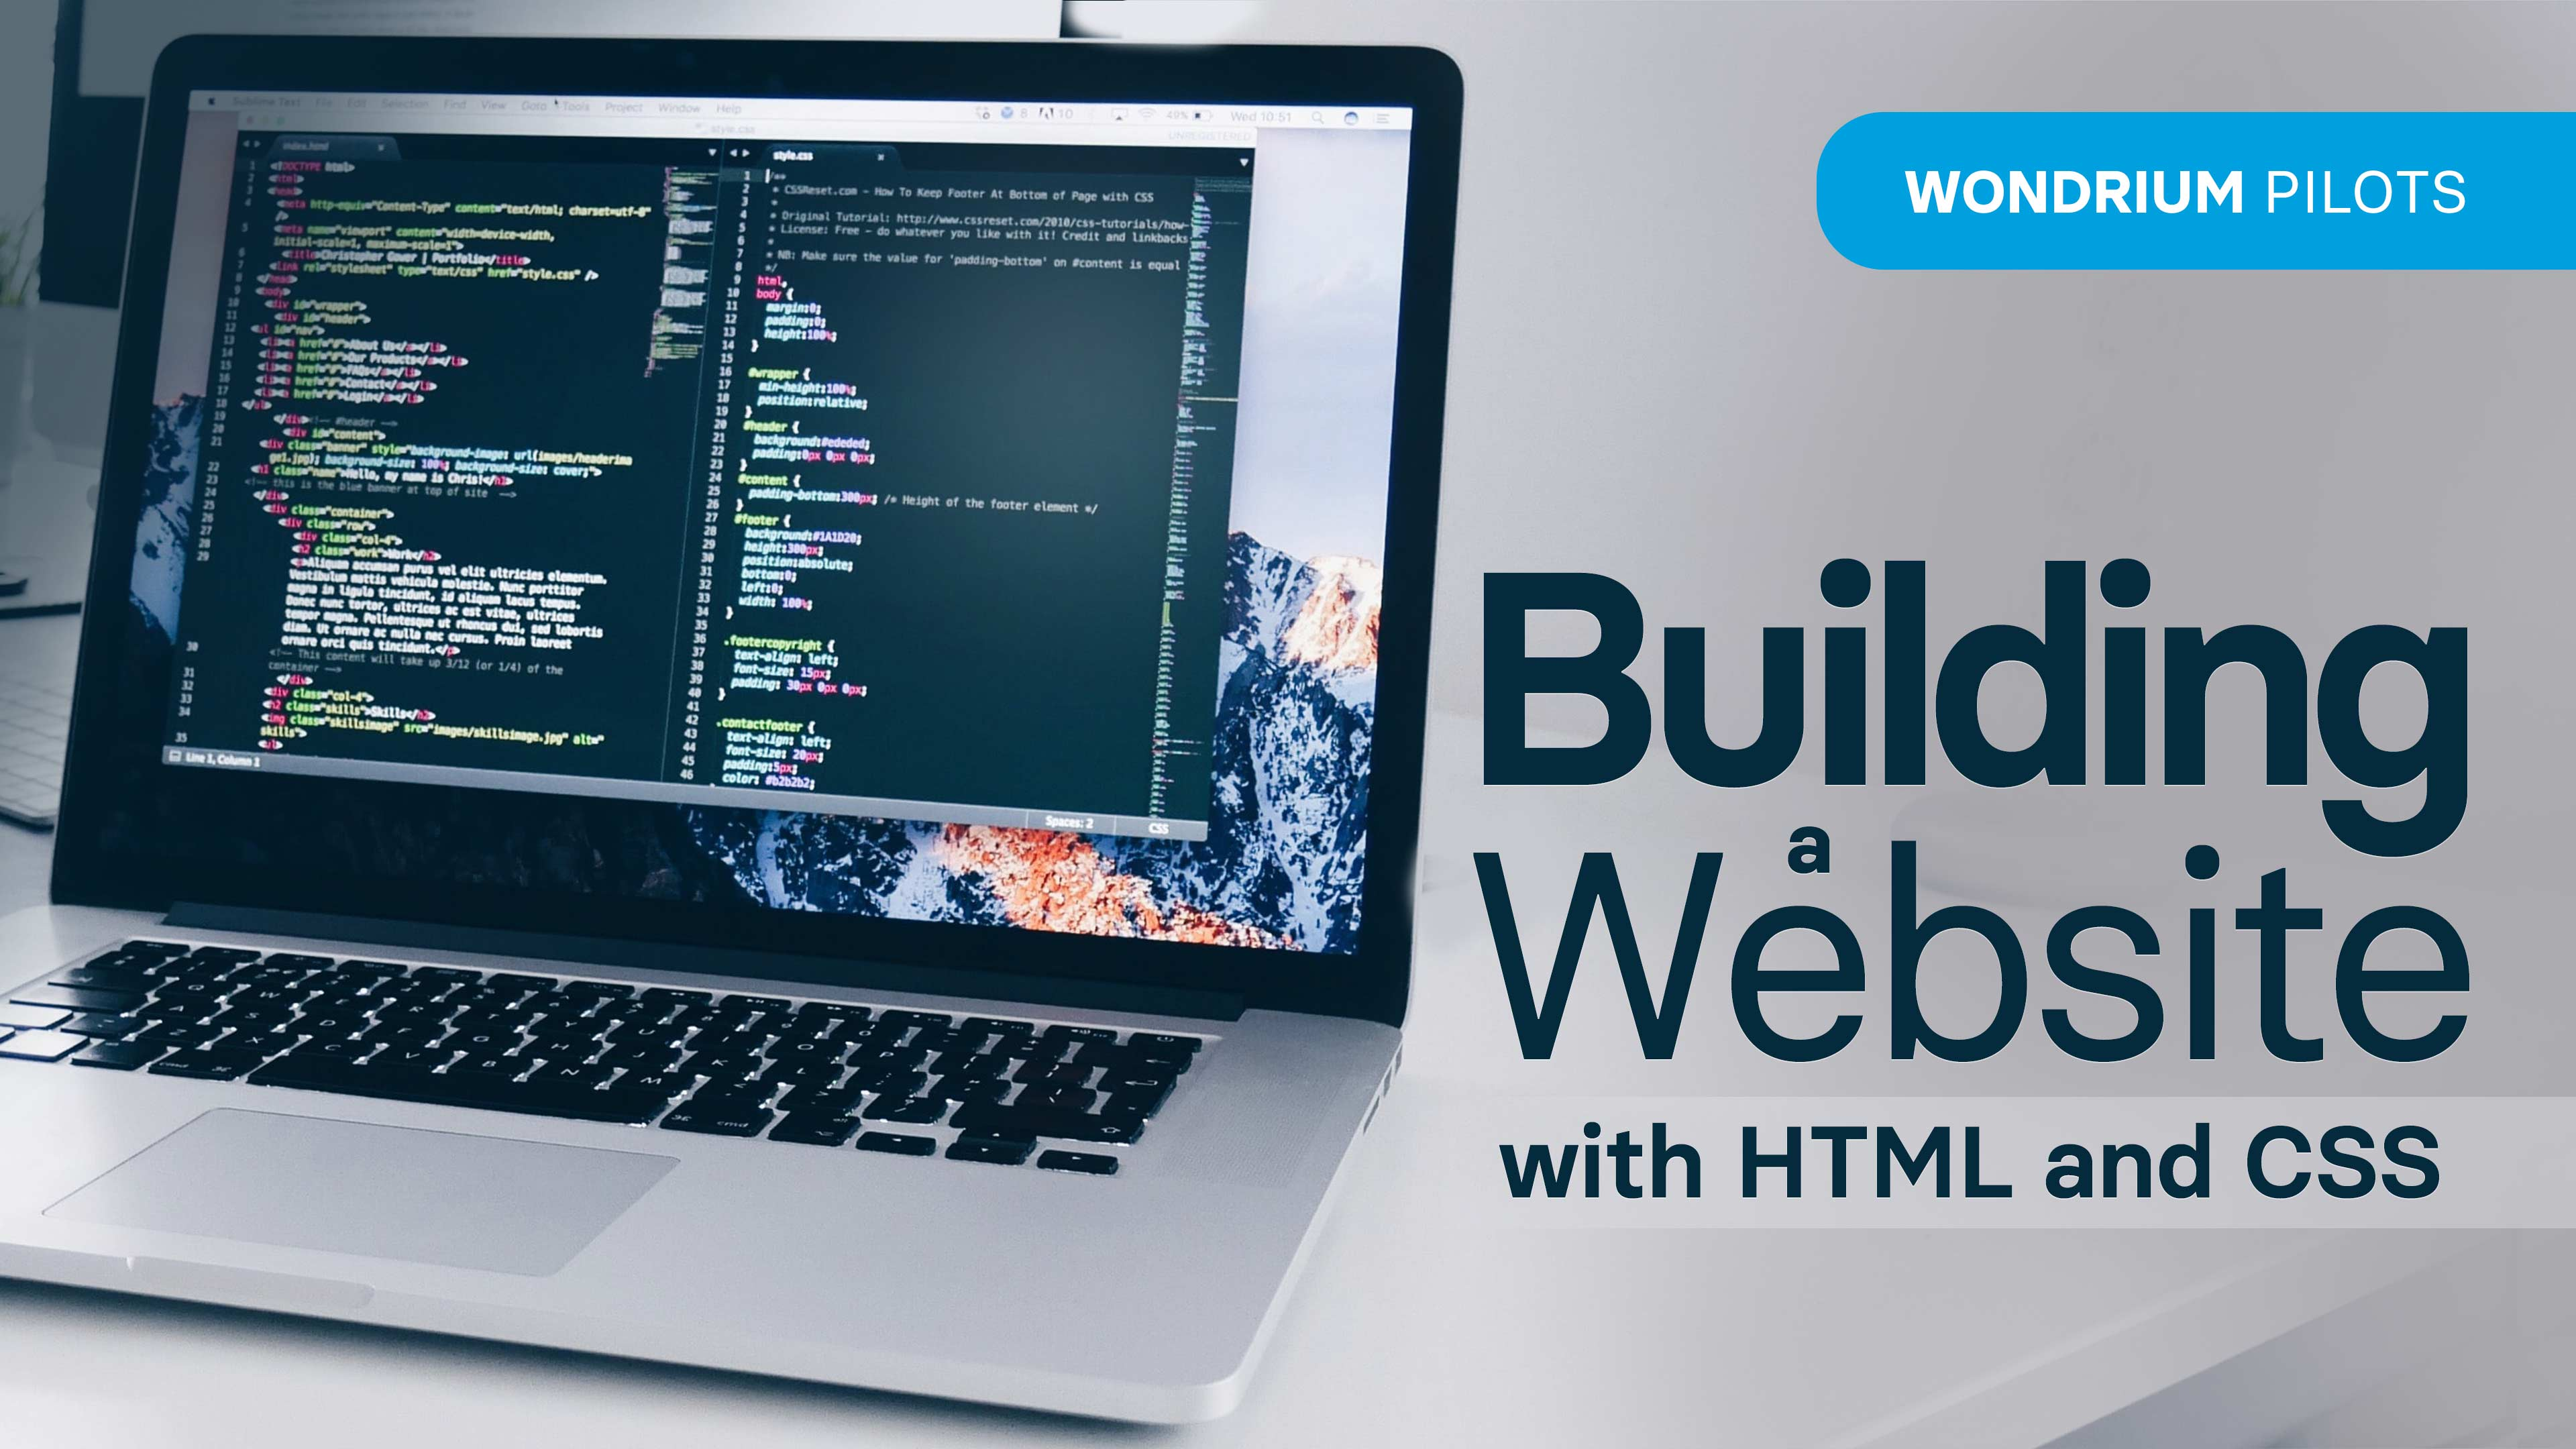 Building a Website with HTML and CSS